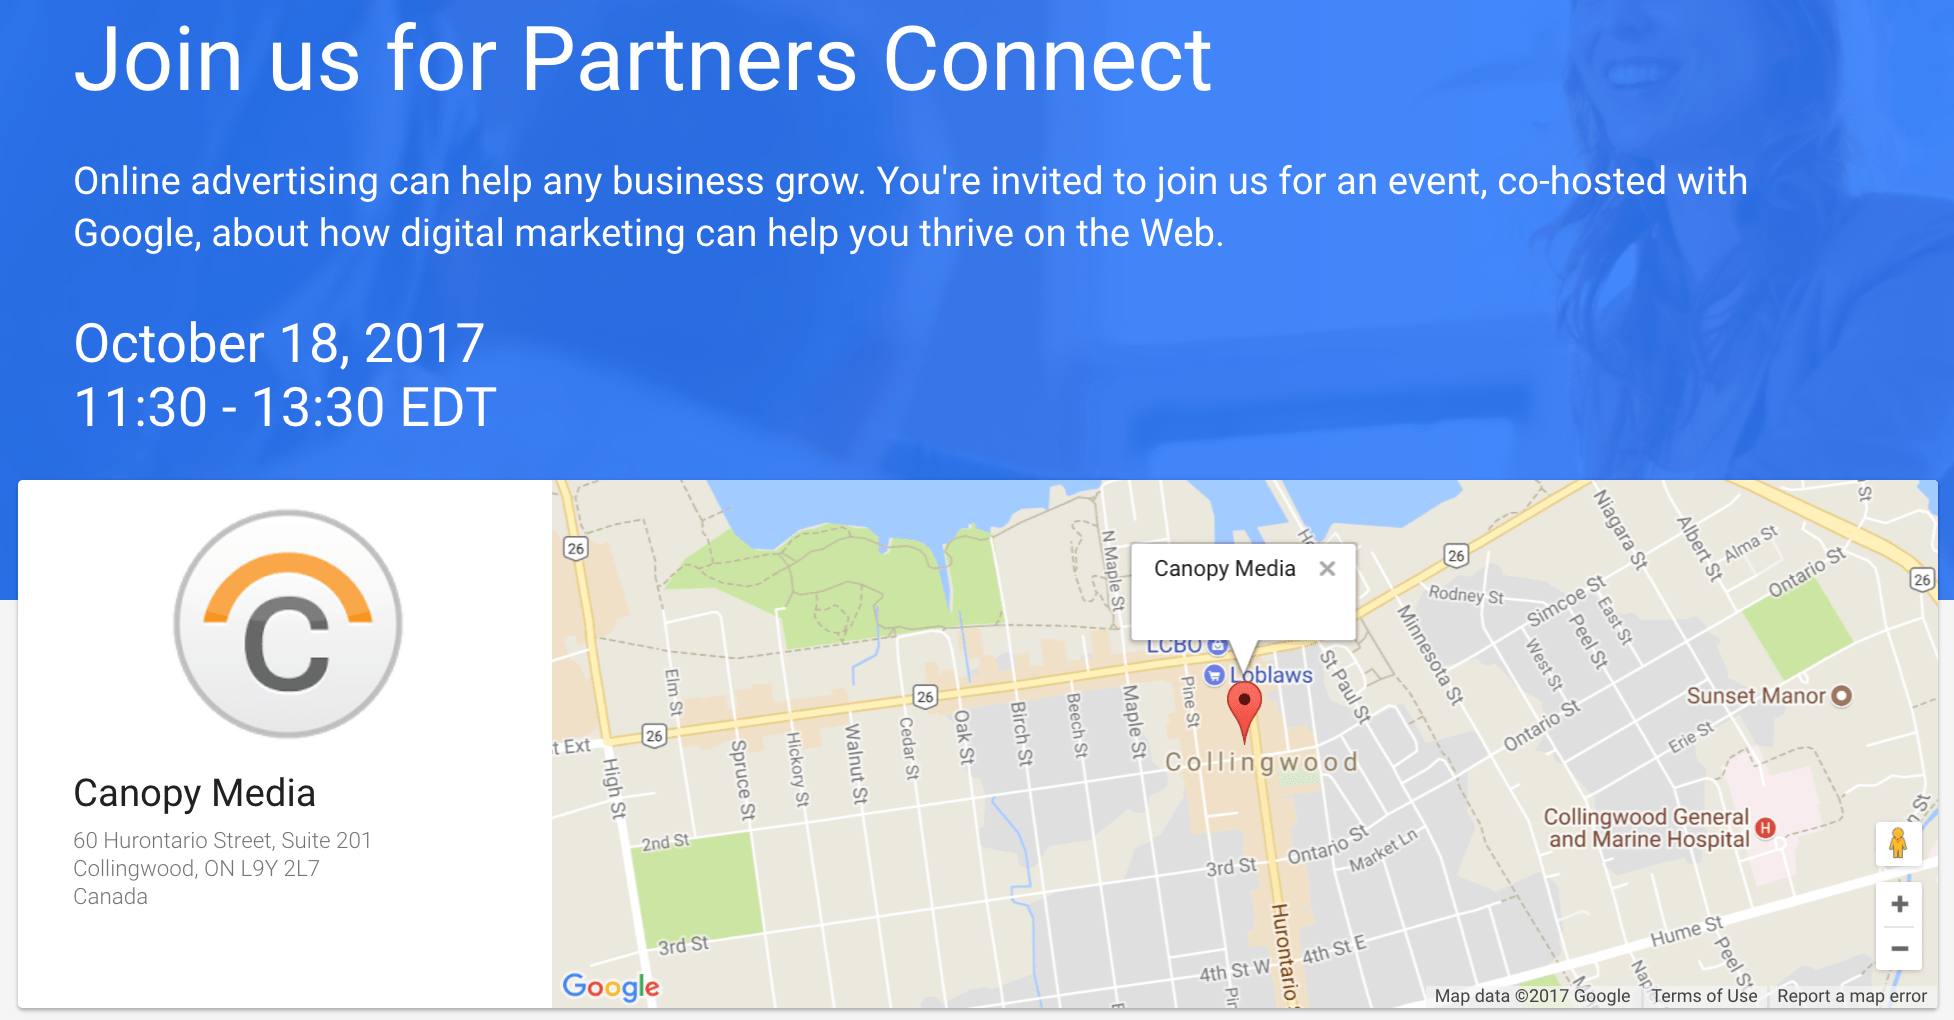 Join Us & Google Oct 18 – Digital Marketing for Healthcare Providers